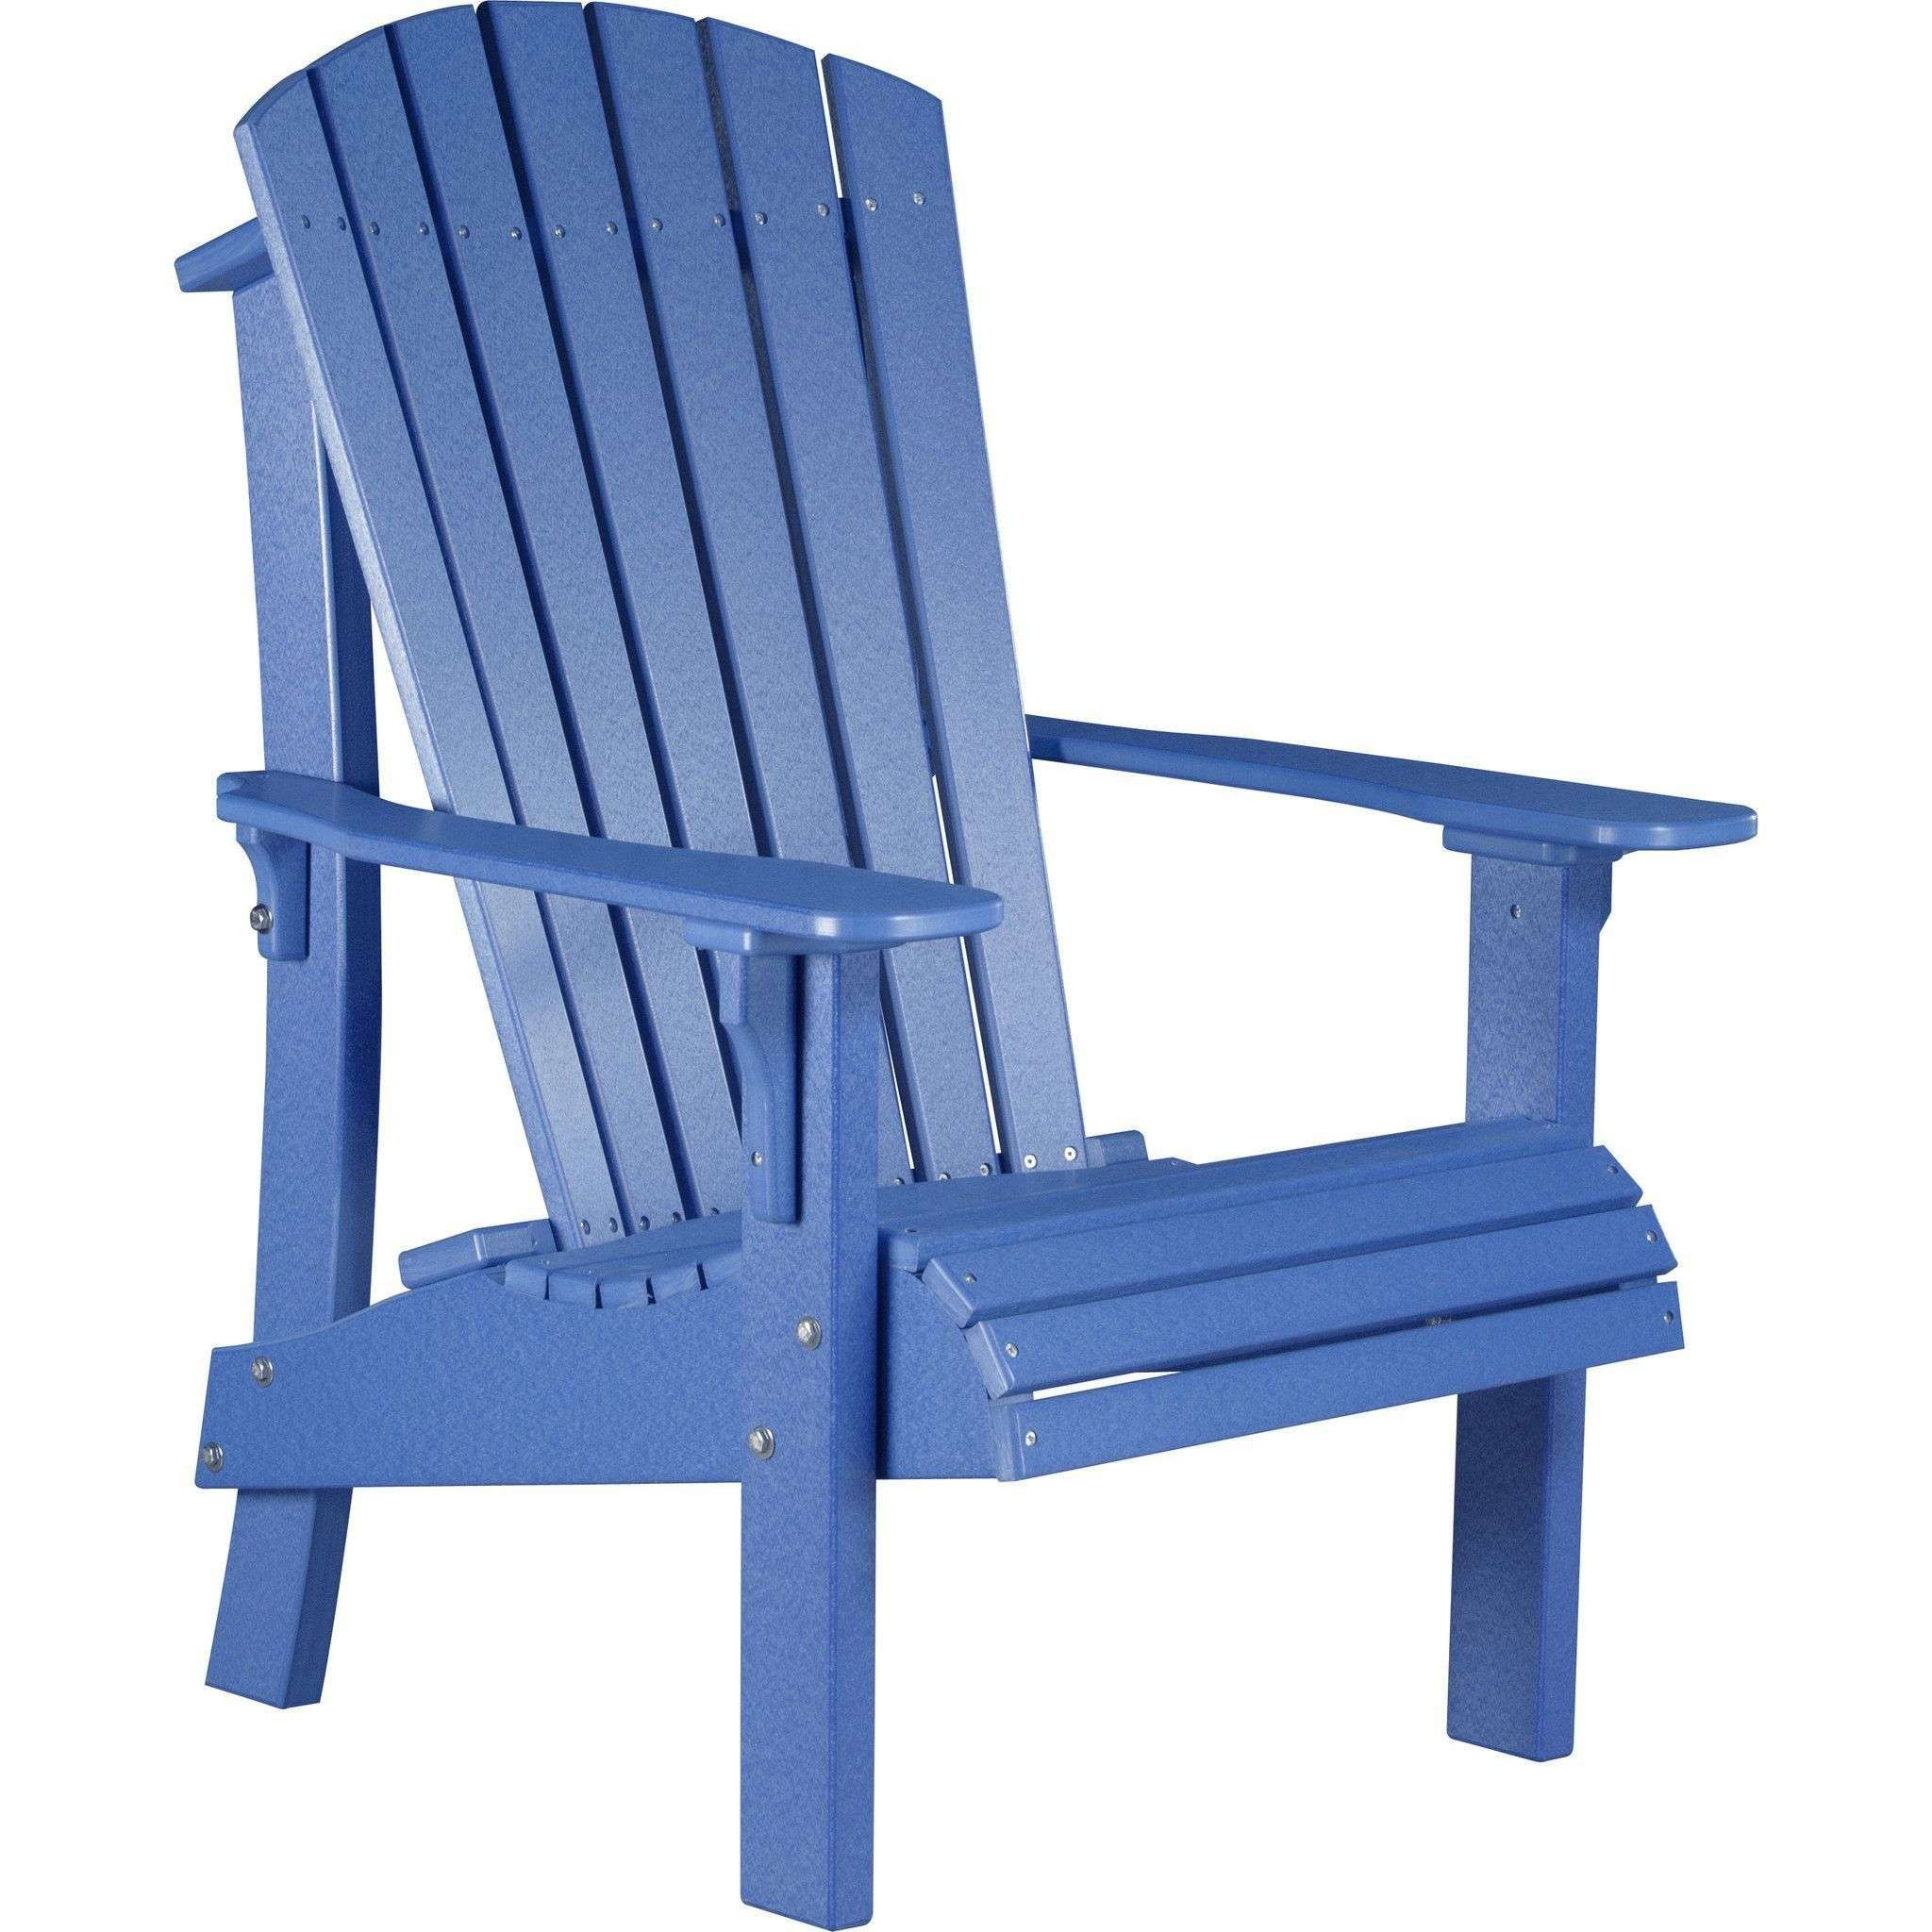 Rustic Yet Comfy, Adirondack Chairs Are Pieces Of Patio Furniture In Canada  That Never Go Out Of Style. Often Made From Wood, These Classic Patio Chairs  ...